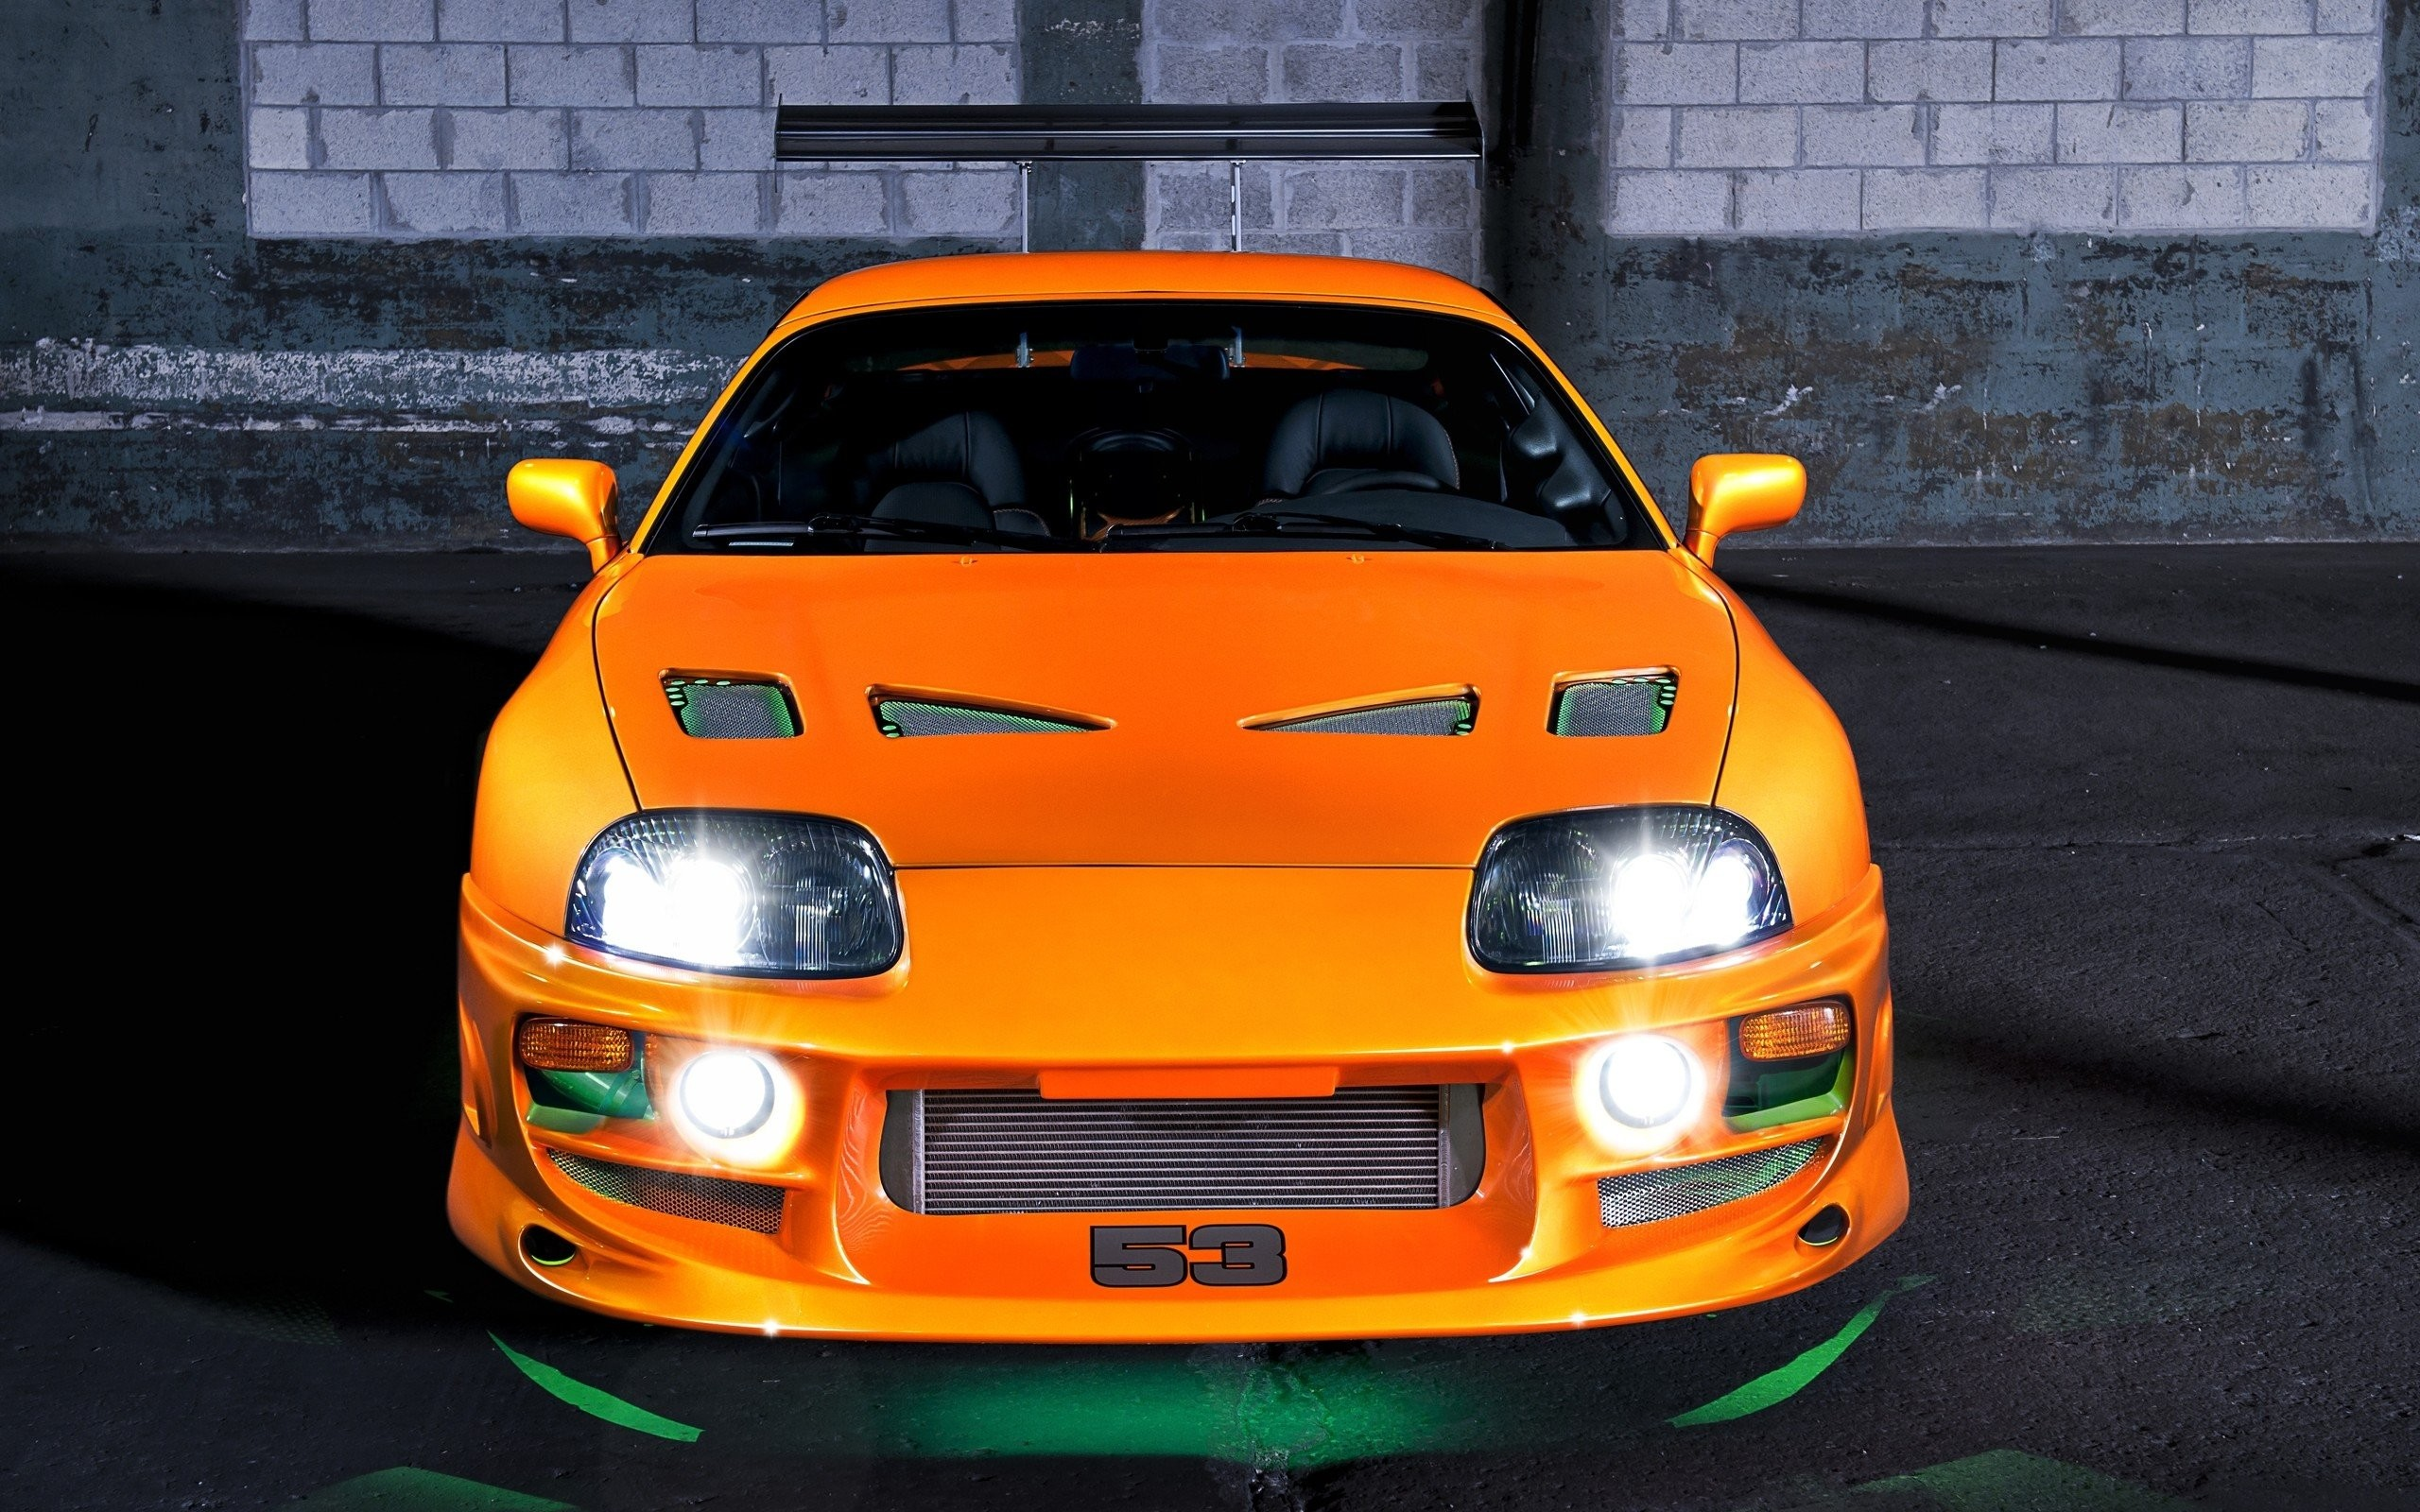 2560x1600 Cars Fast and Furious Toyota Supra JDM Japanese domestic market wallpaper |   | 288439 | WallpaperUP